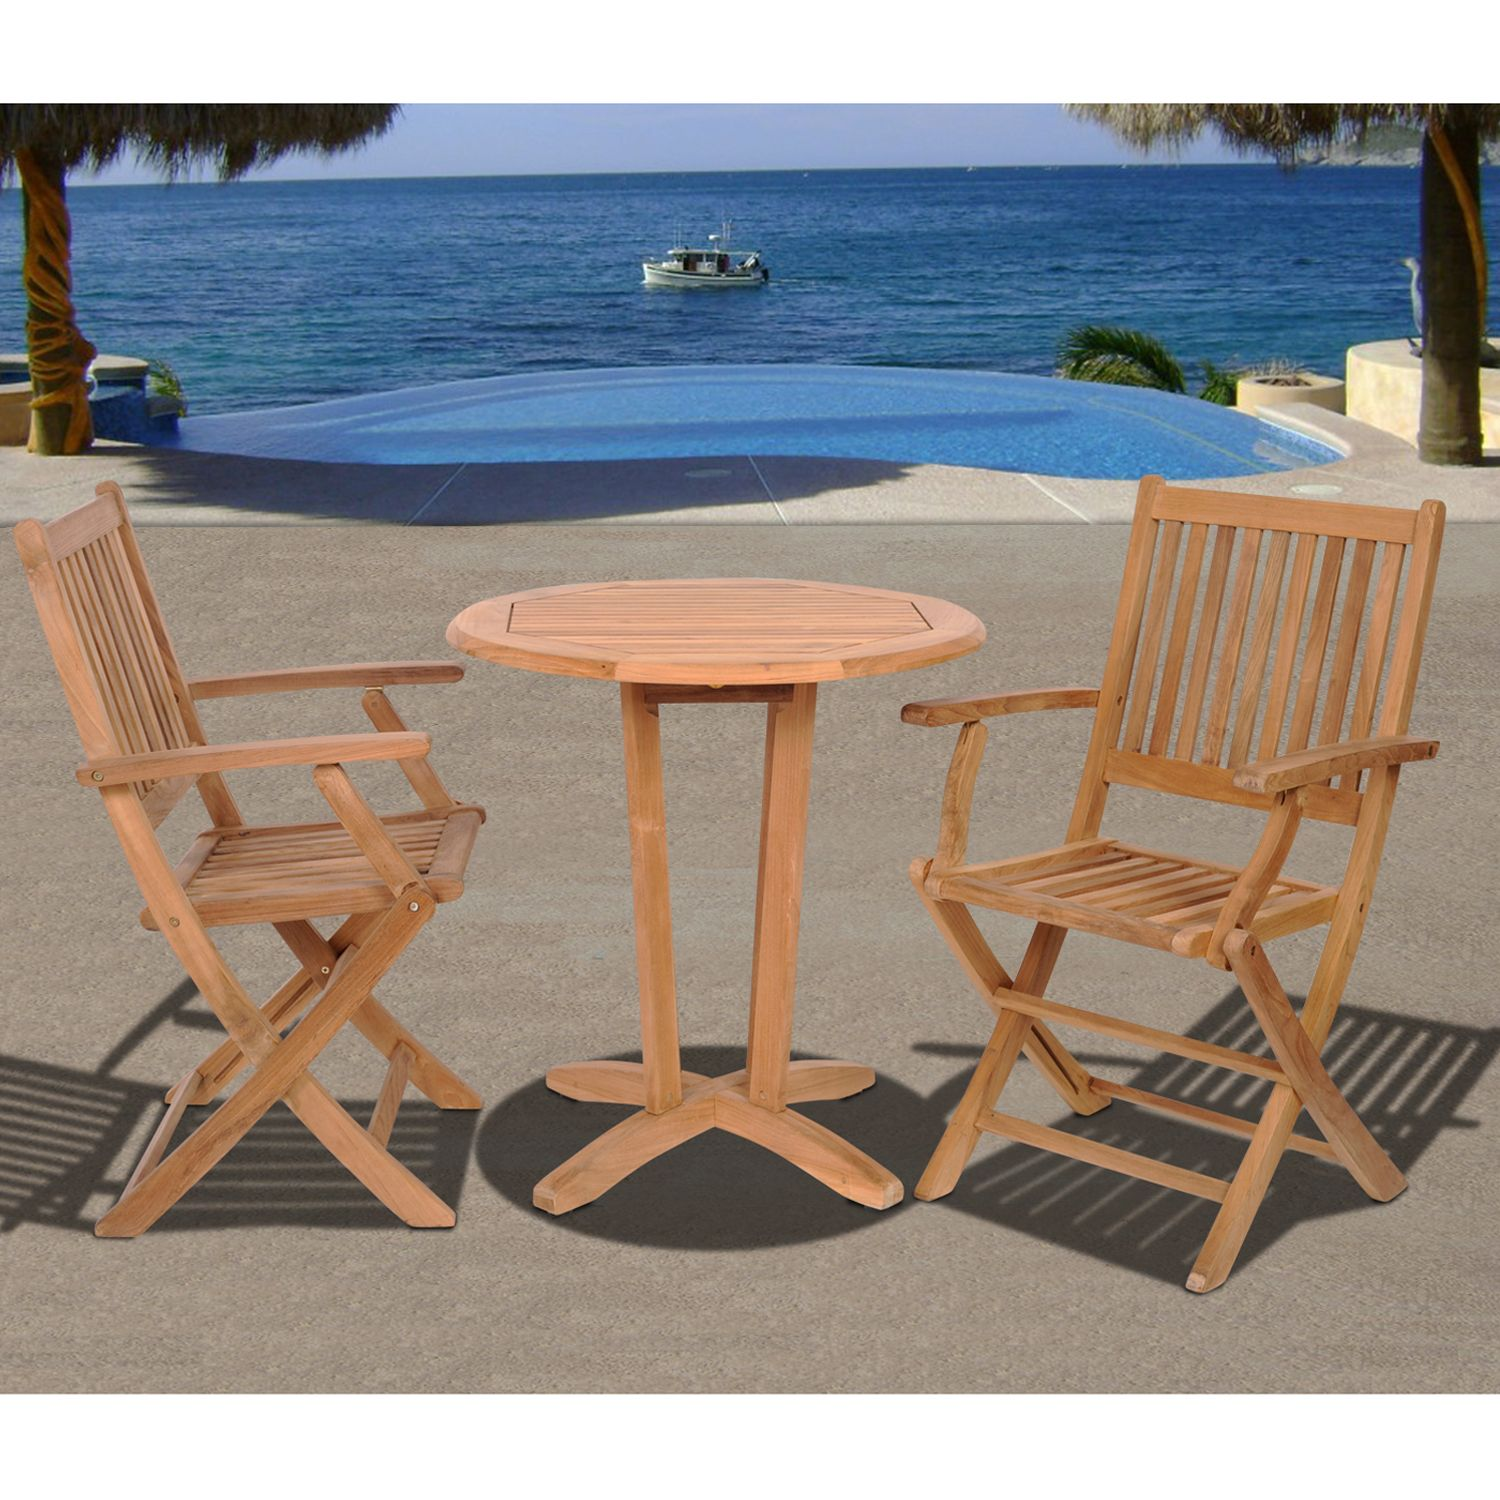 Patio Bistro Sets Furniture Sets Furniture Collections & Sets